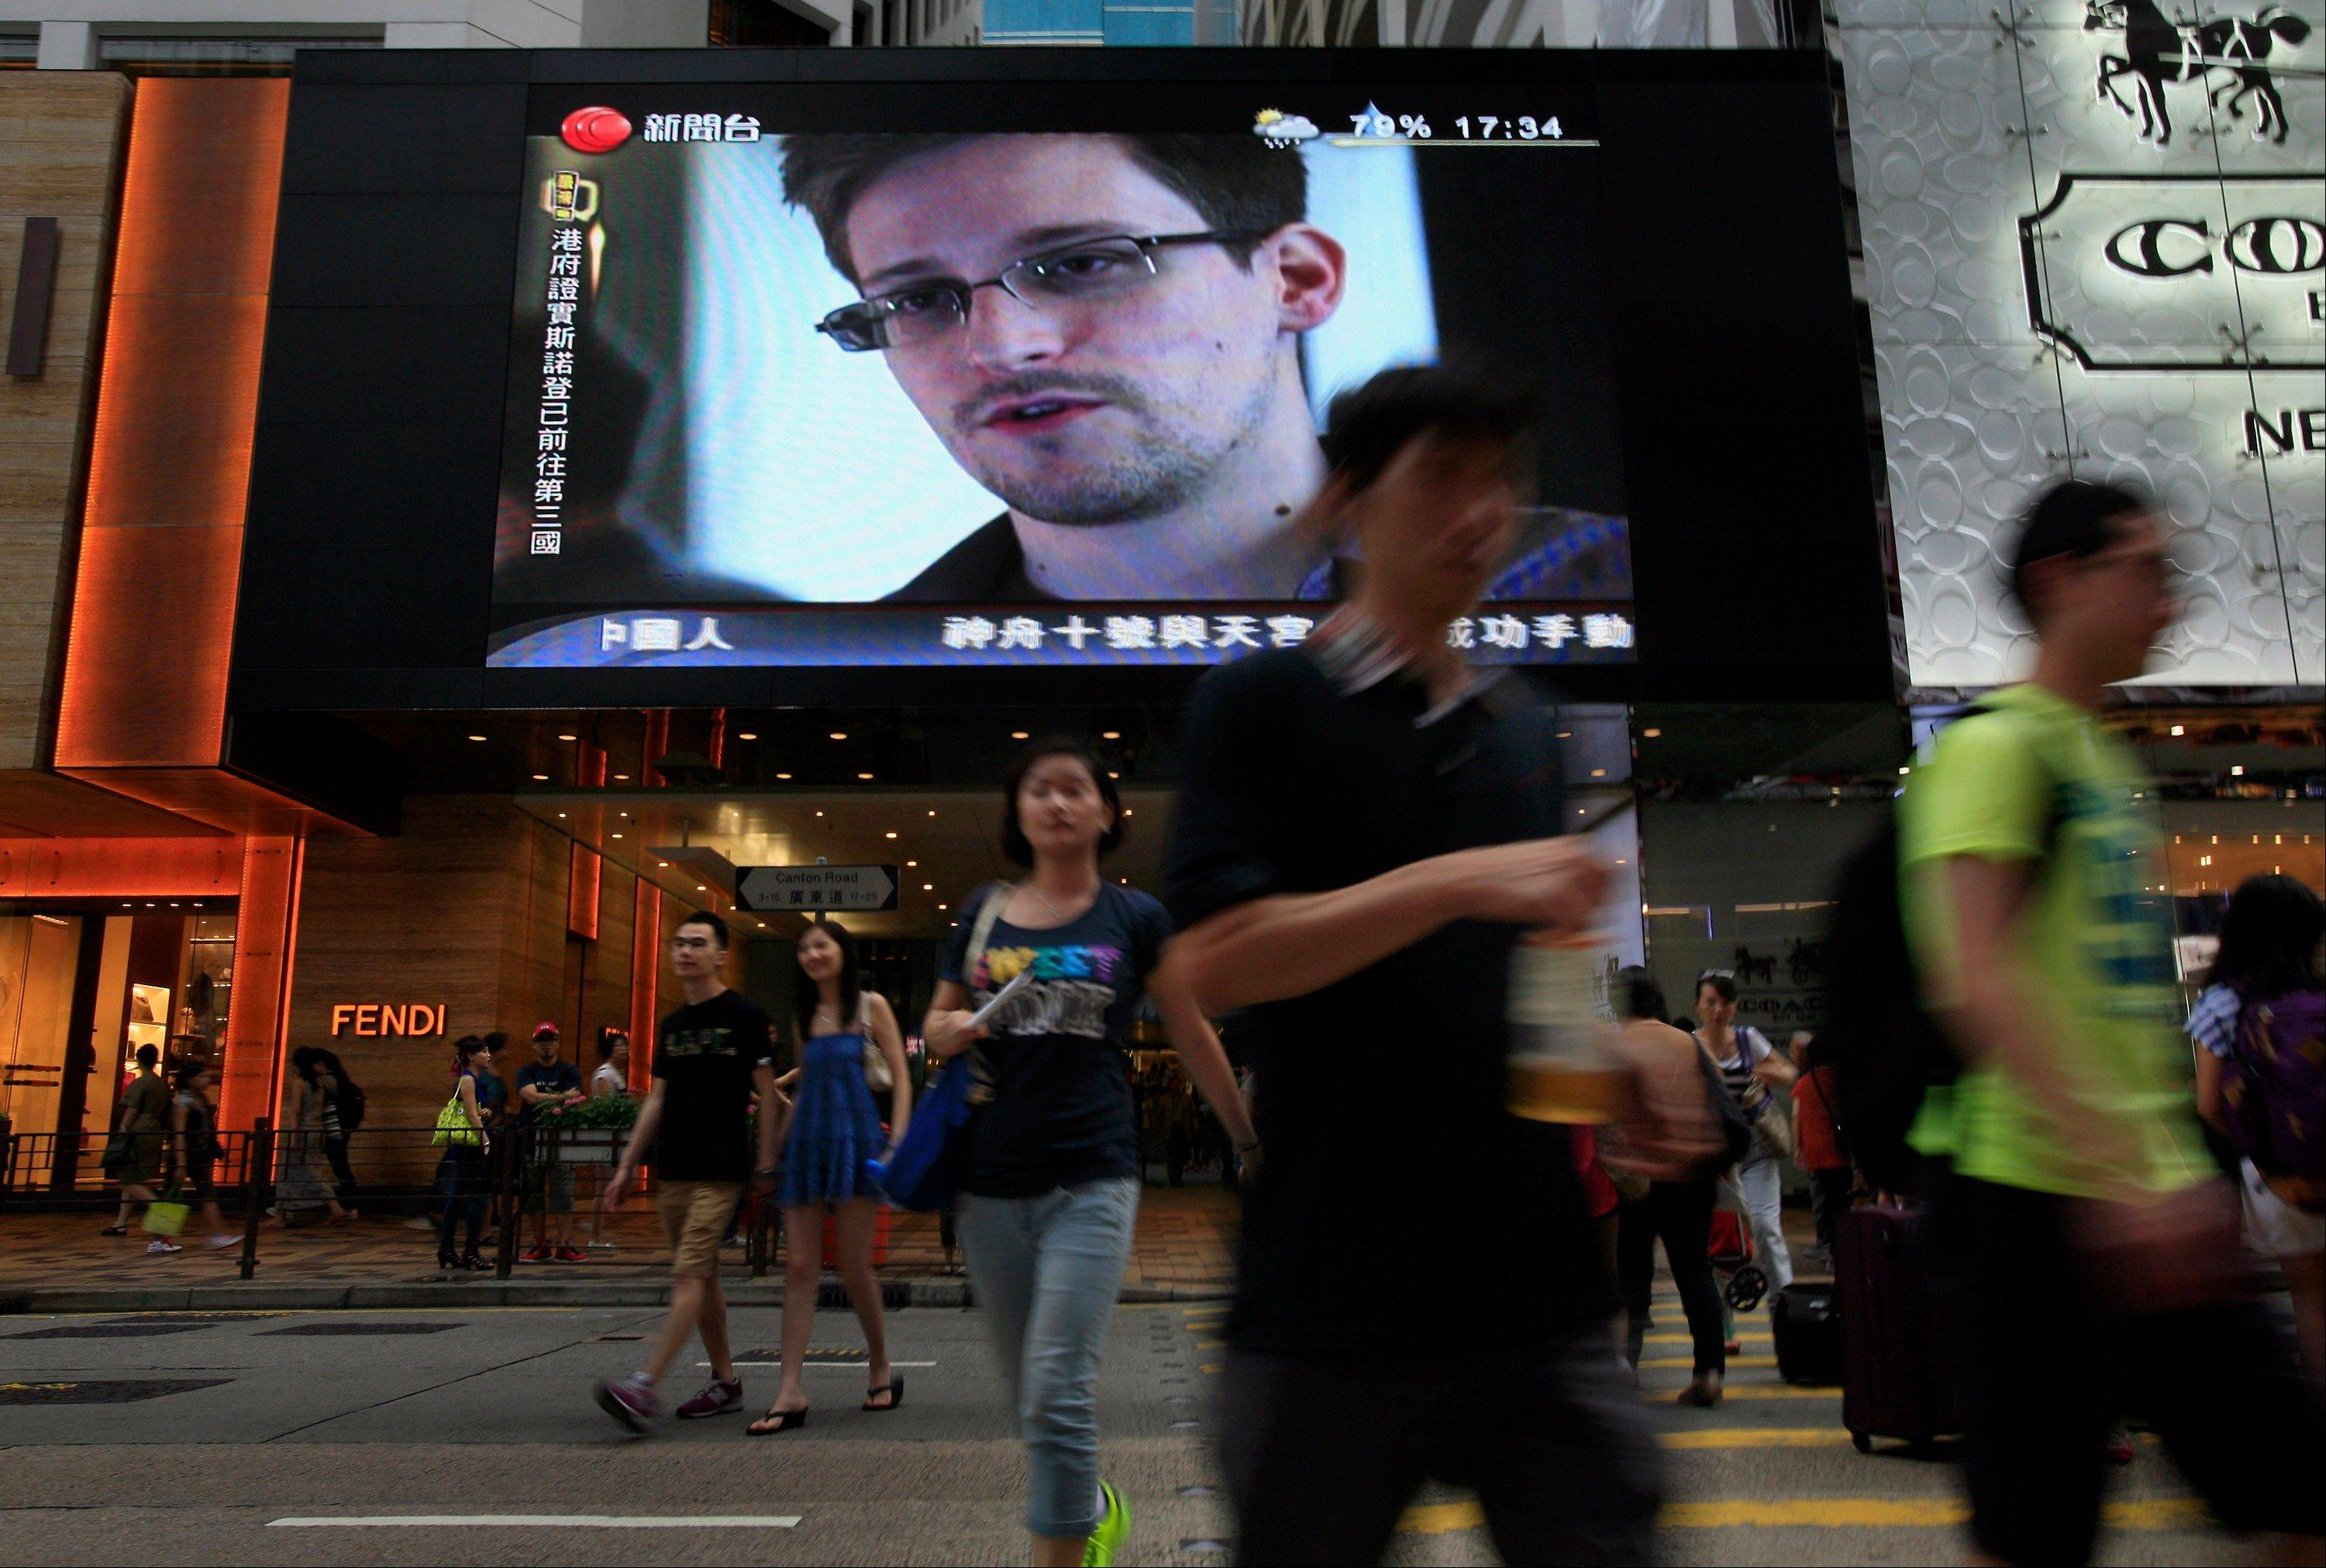 The saga of Edward Snowden and the NSA makes one thing clear: The United States' central role in developing the Internet and hosting its most powerful players has made it the global leader in the surveillance game.